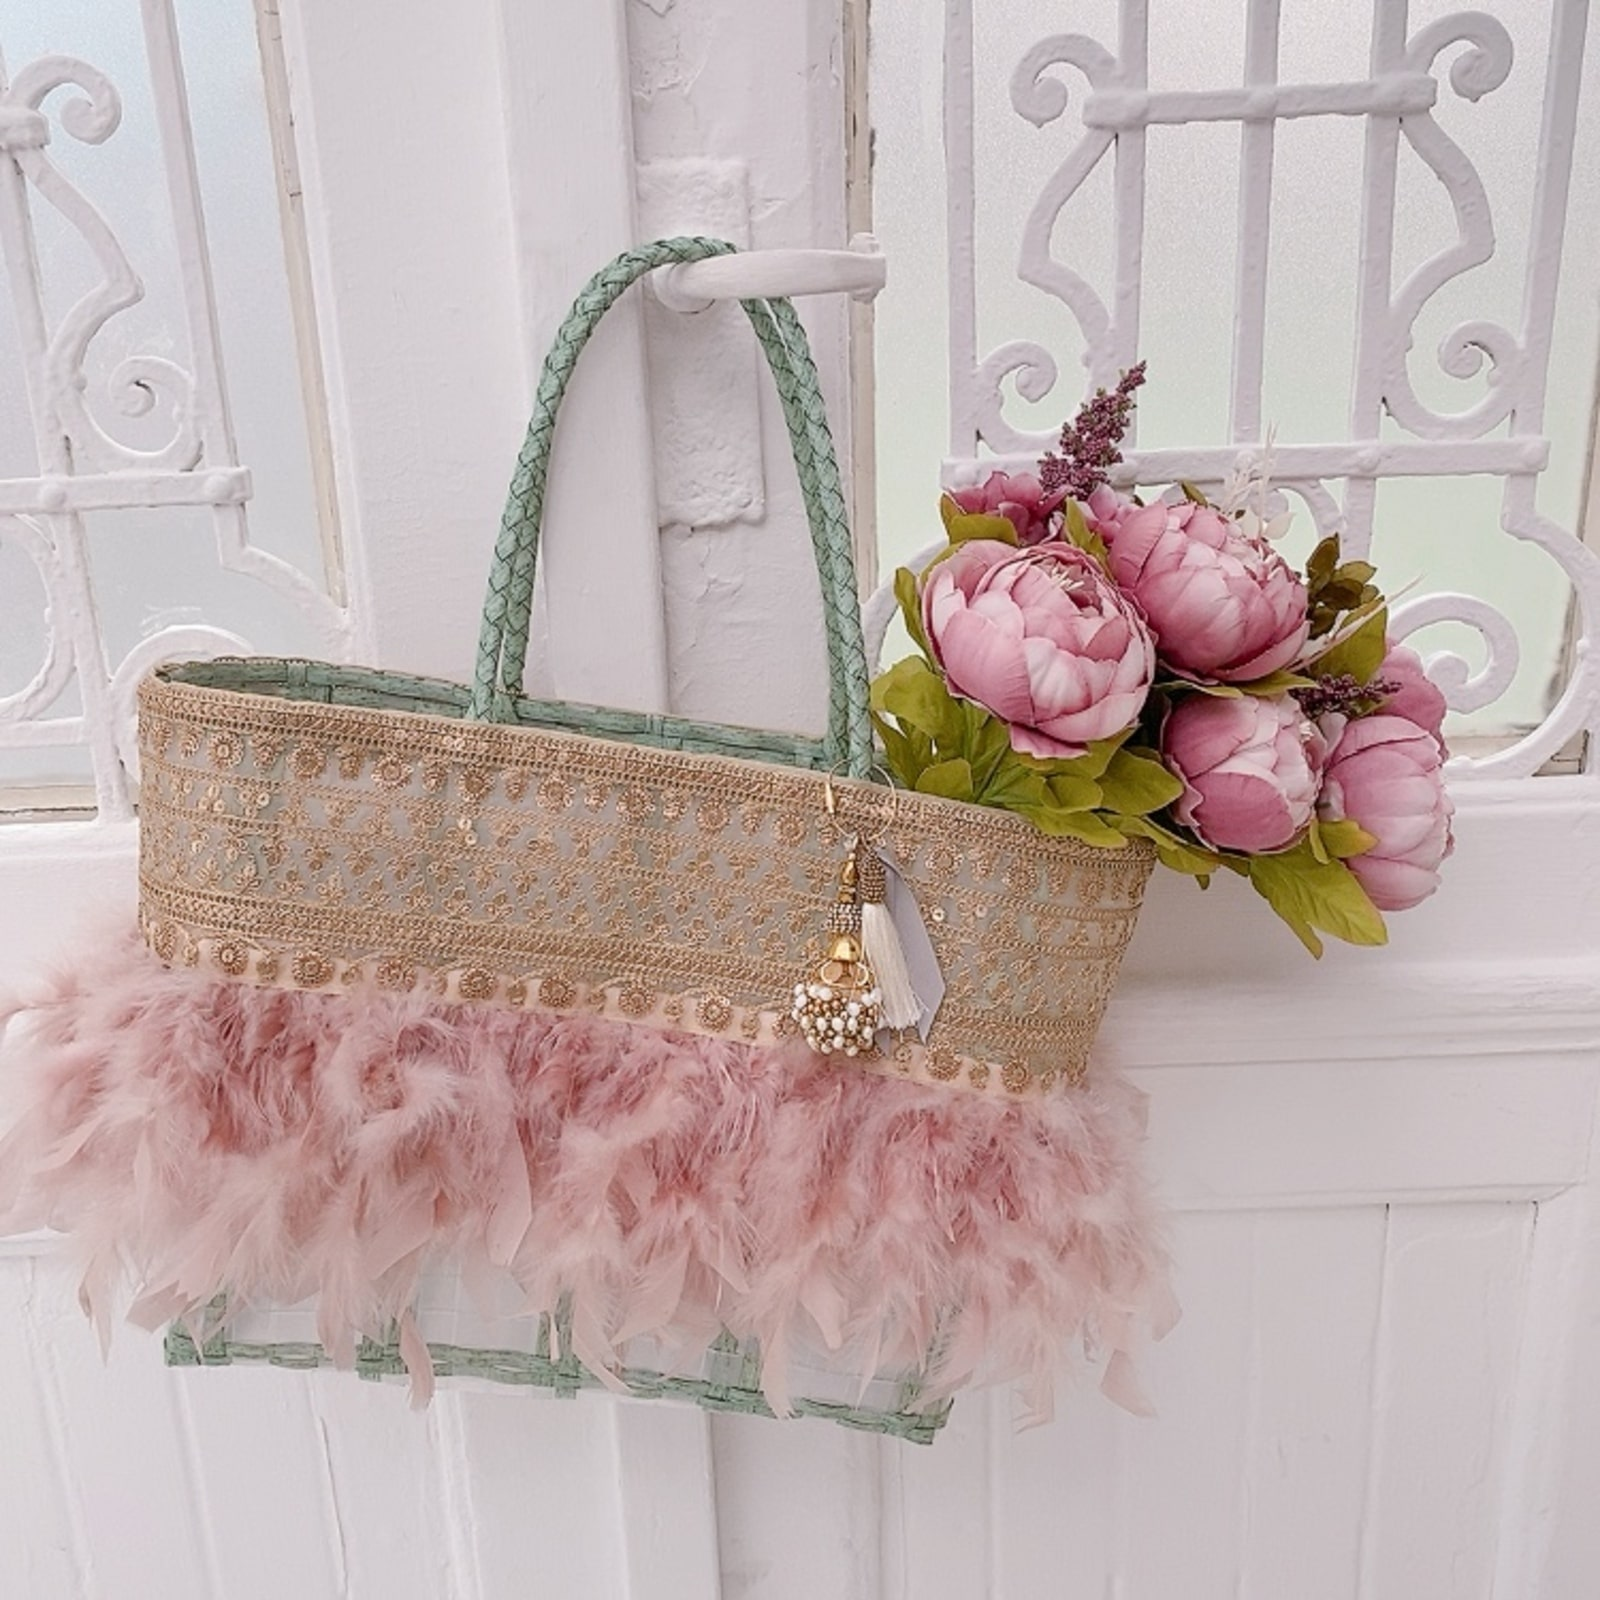 Candy Panier【L】 Crystal Palace